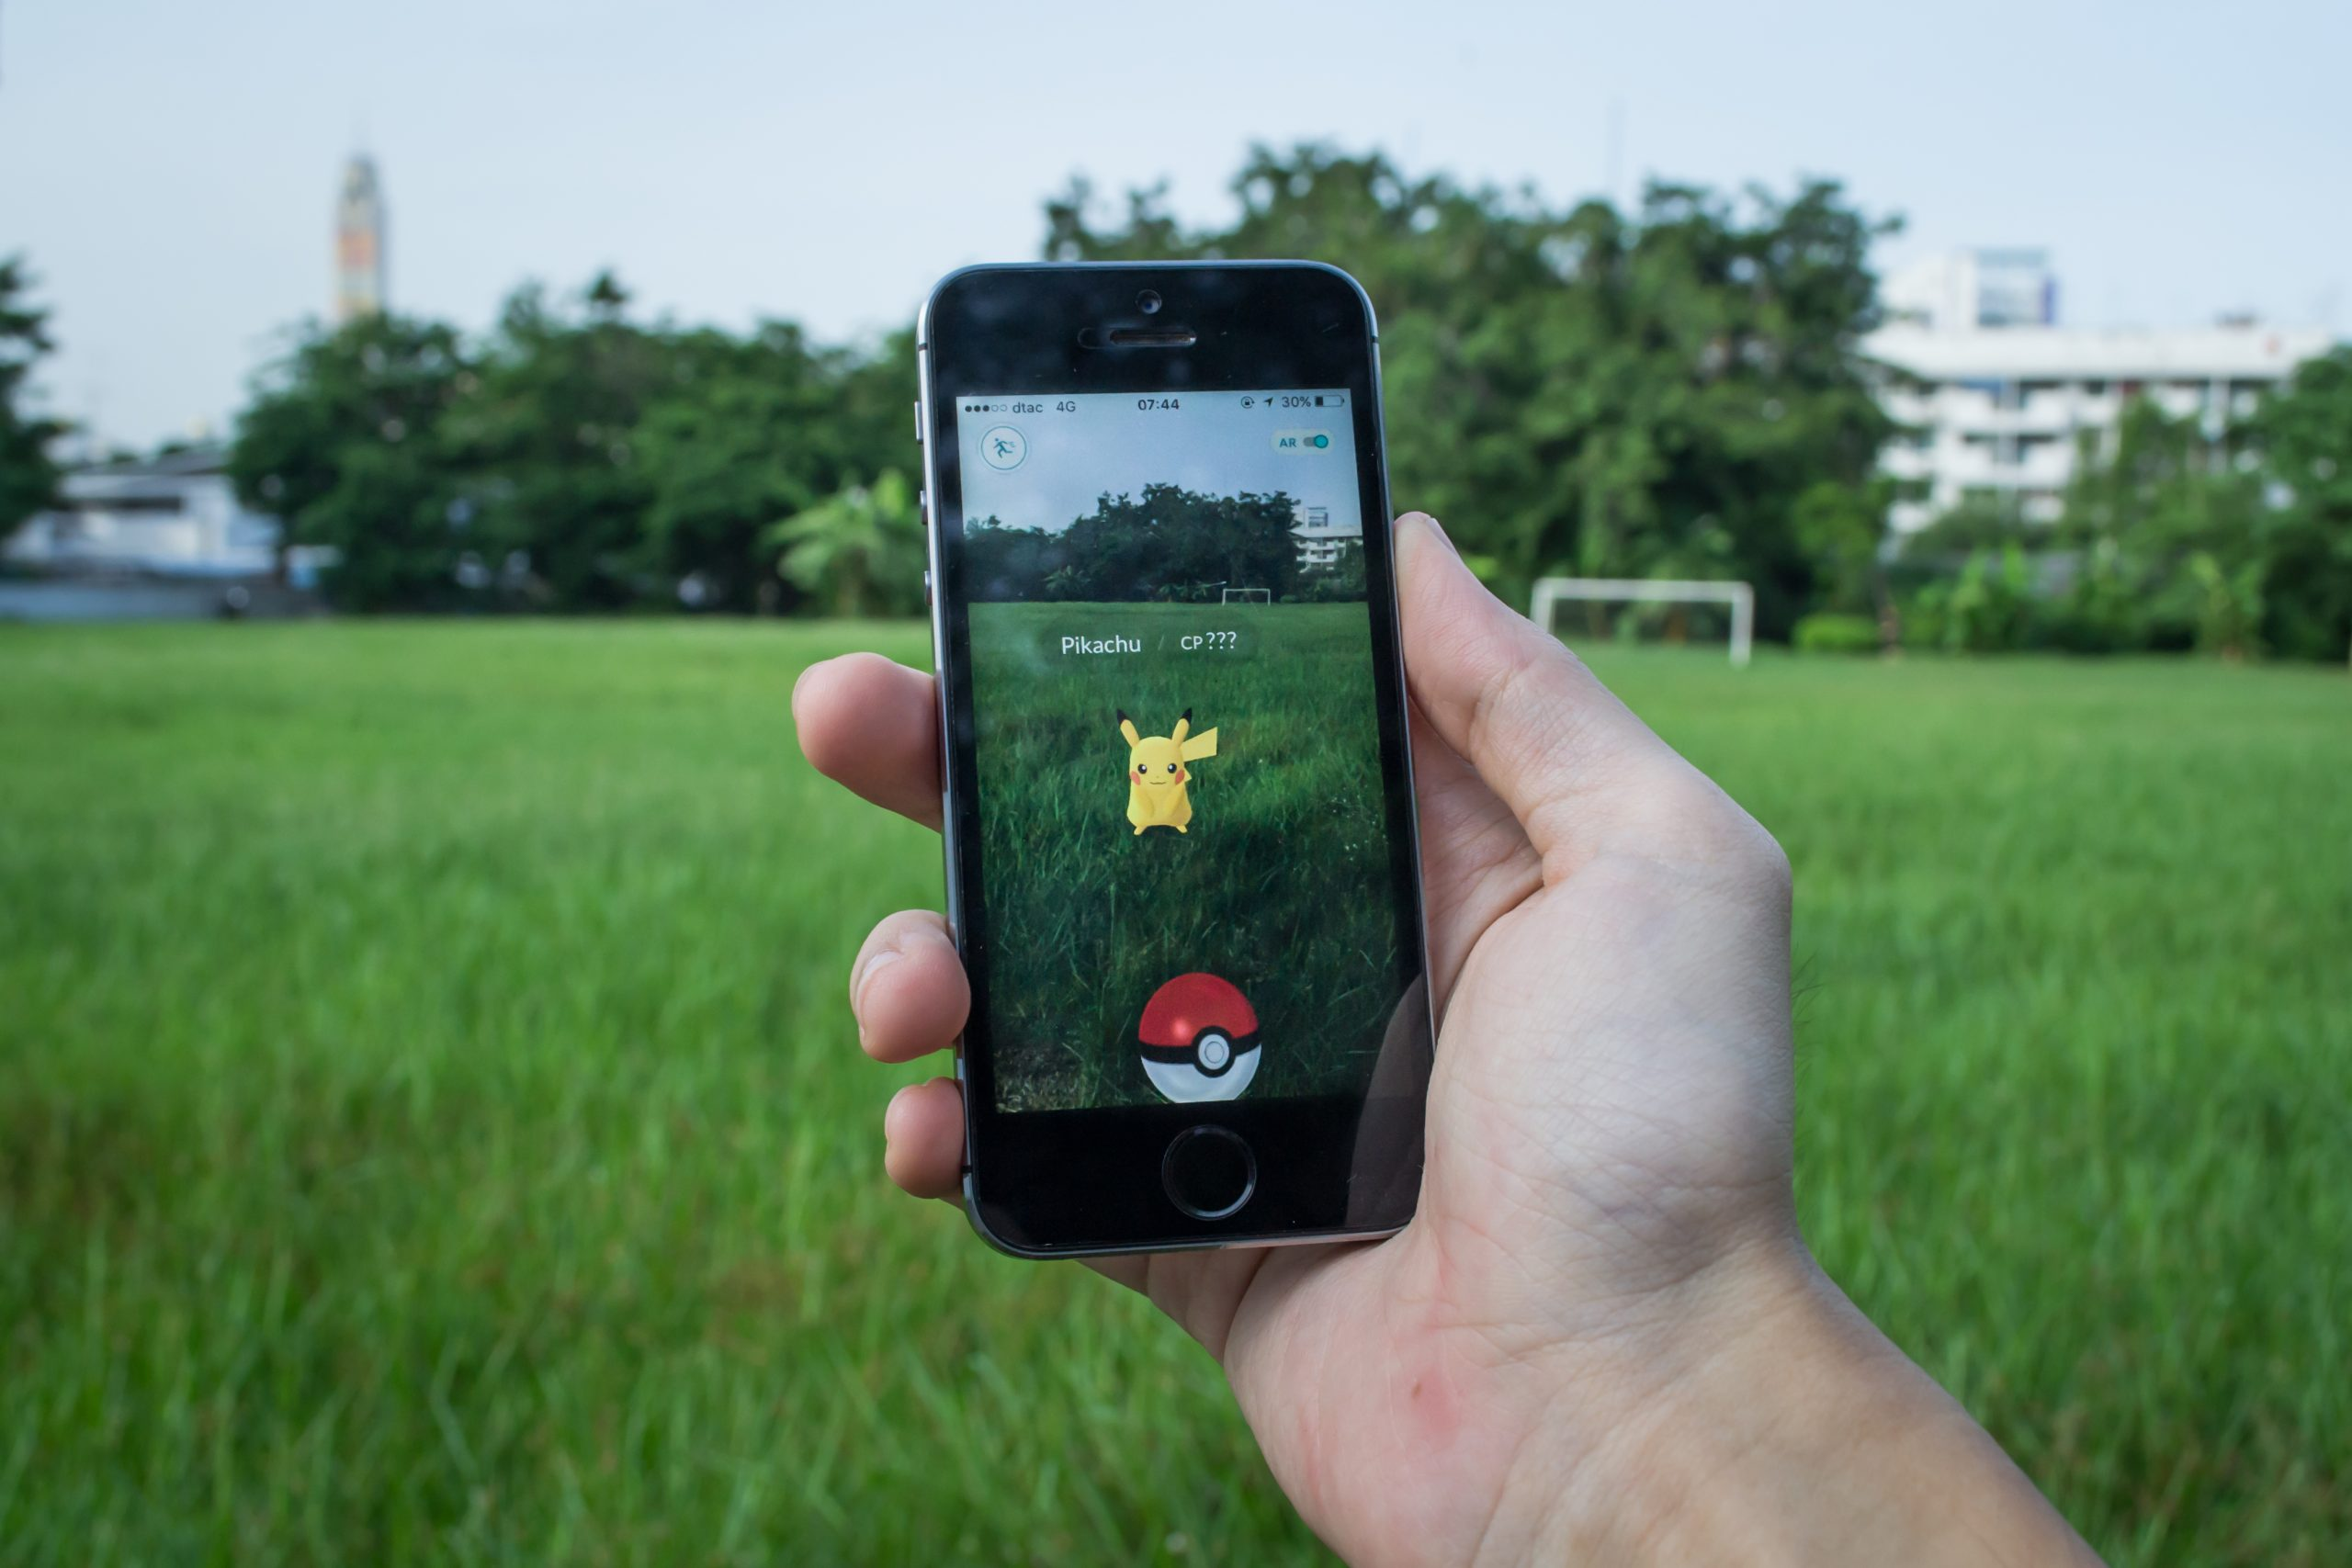 Pokémon Go is taking the world by storm